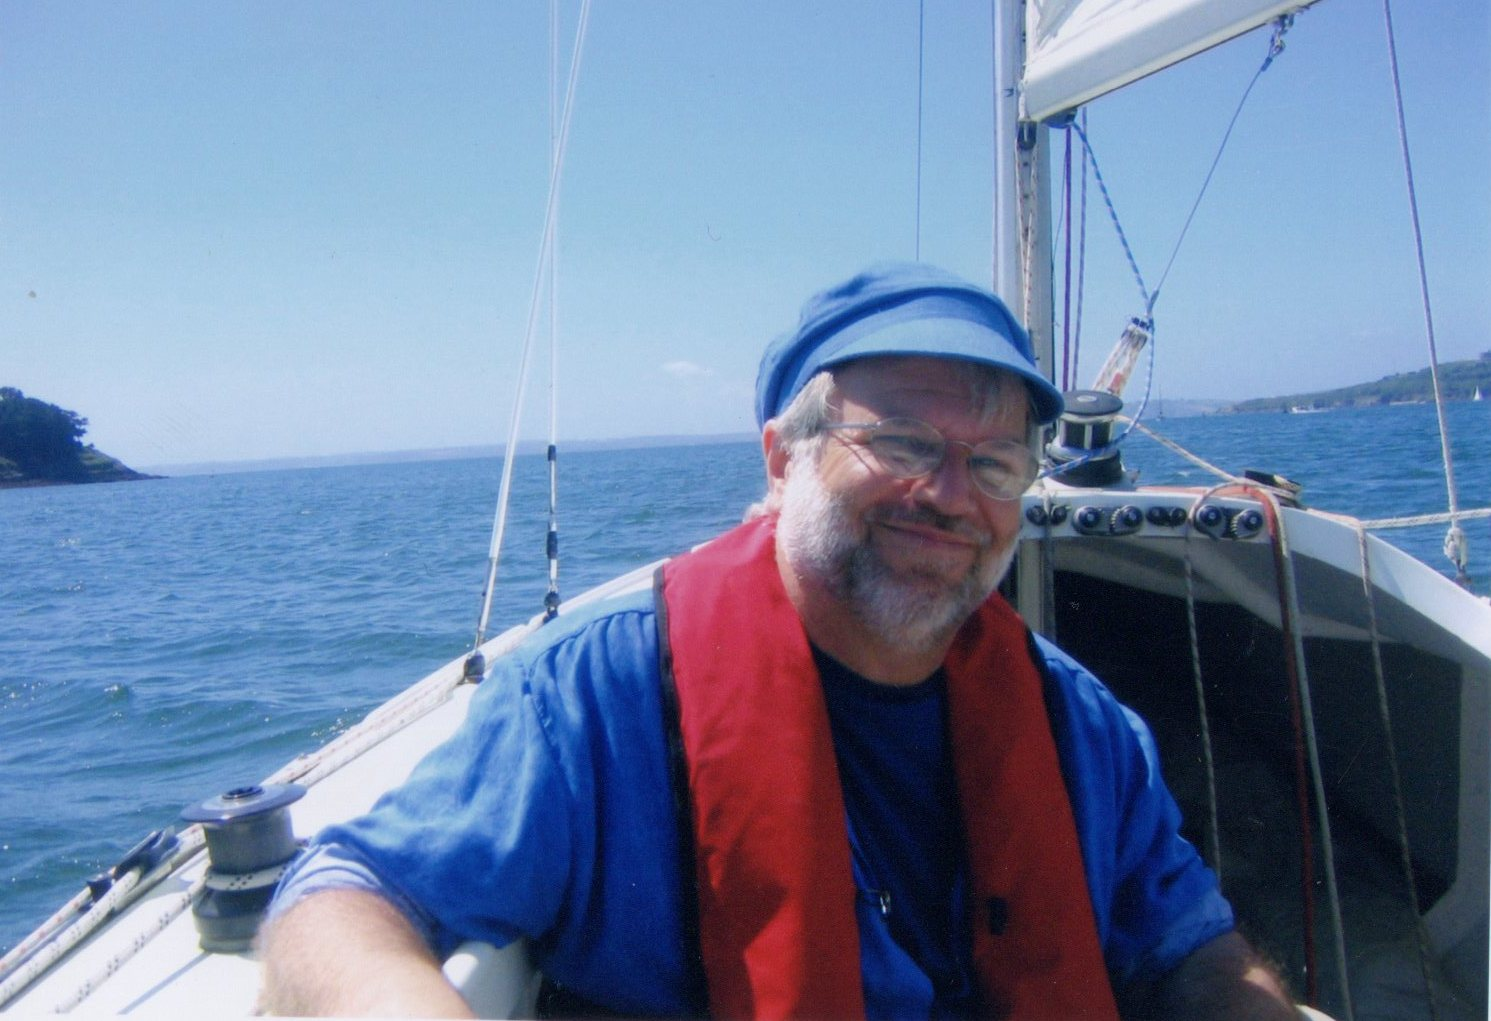 Composer & Captain of the Keyboard pretending to be Captain of the seas, Robin Jones